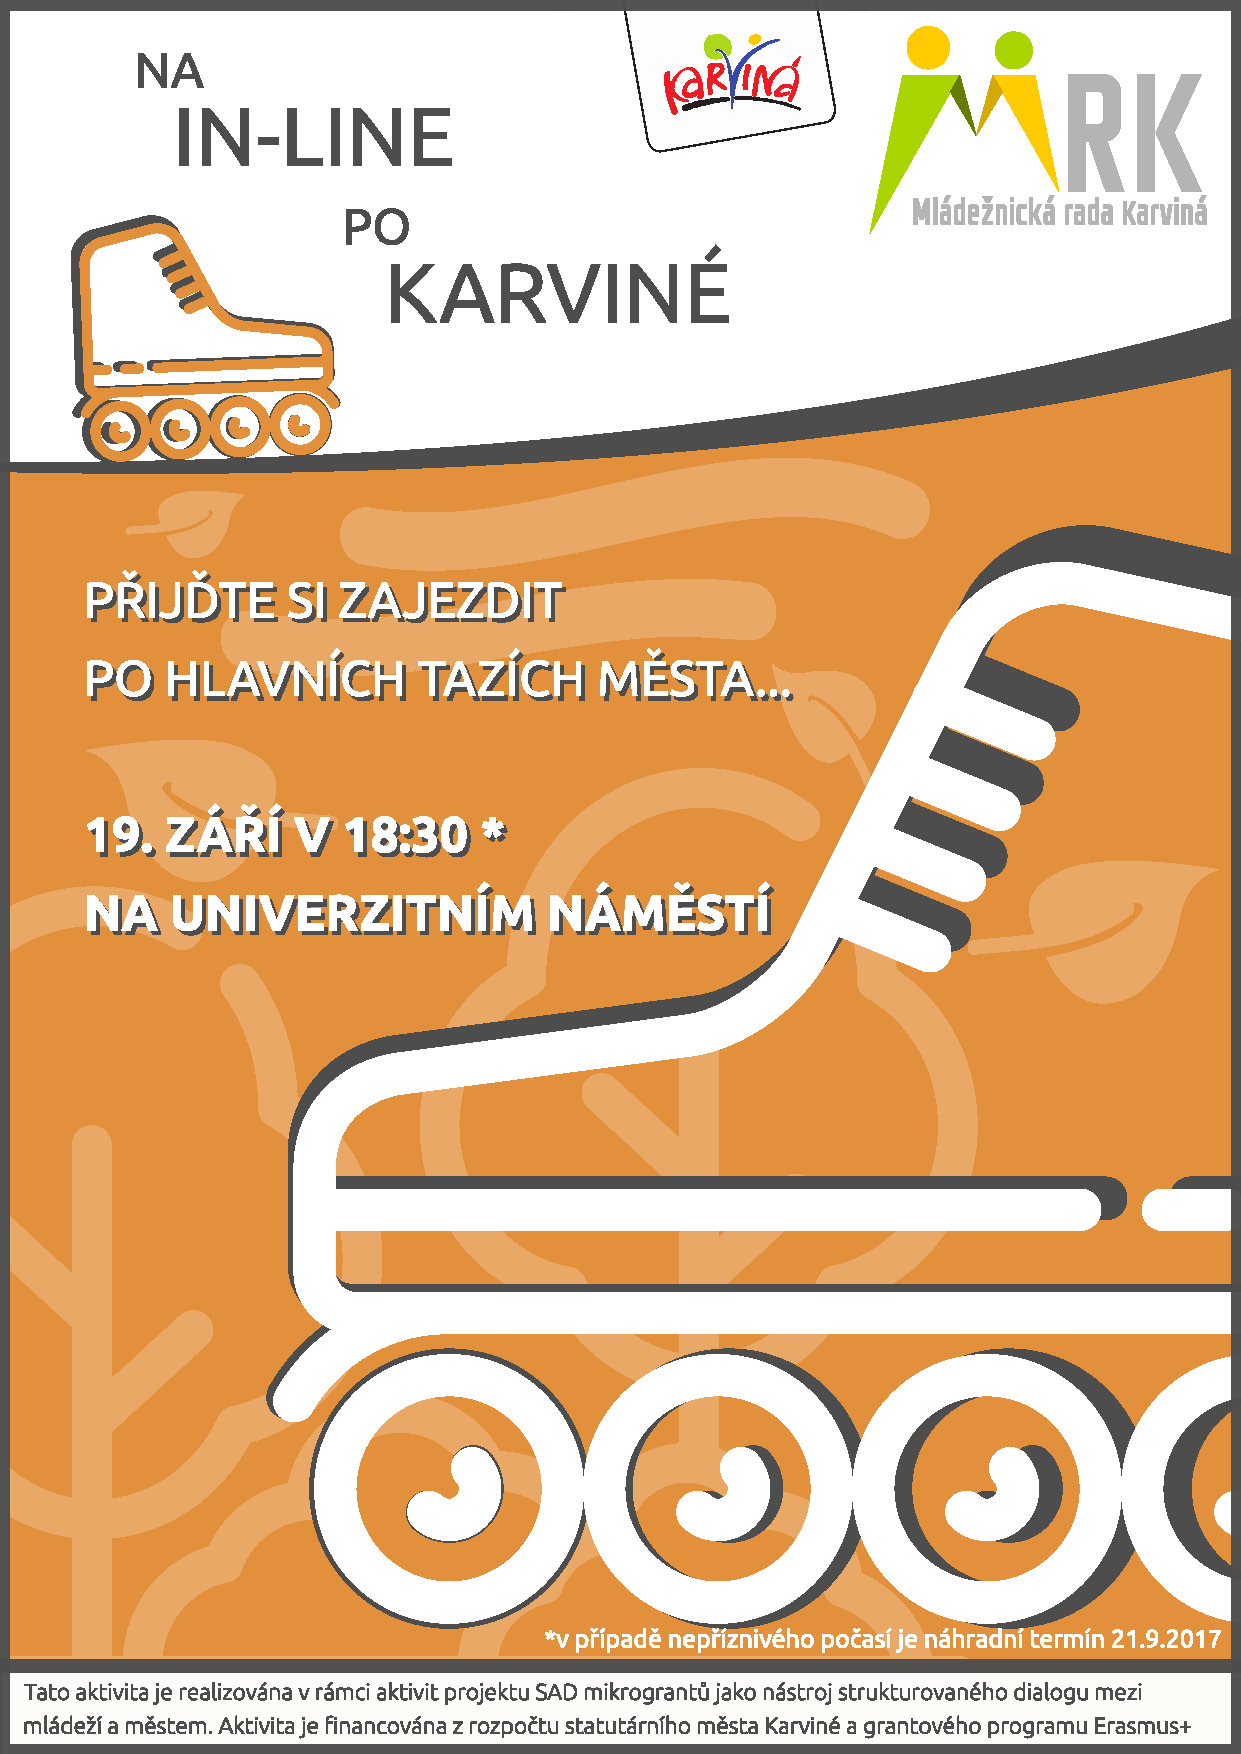 1046-na-in-line-po-karvine.jpg